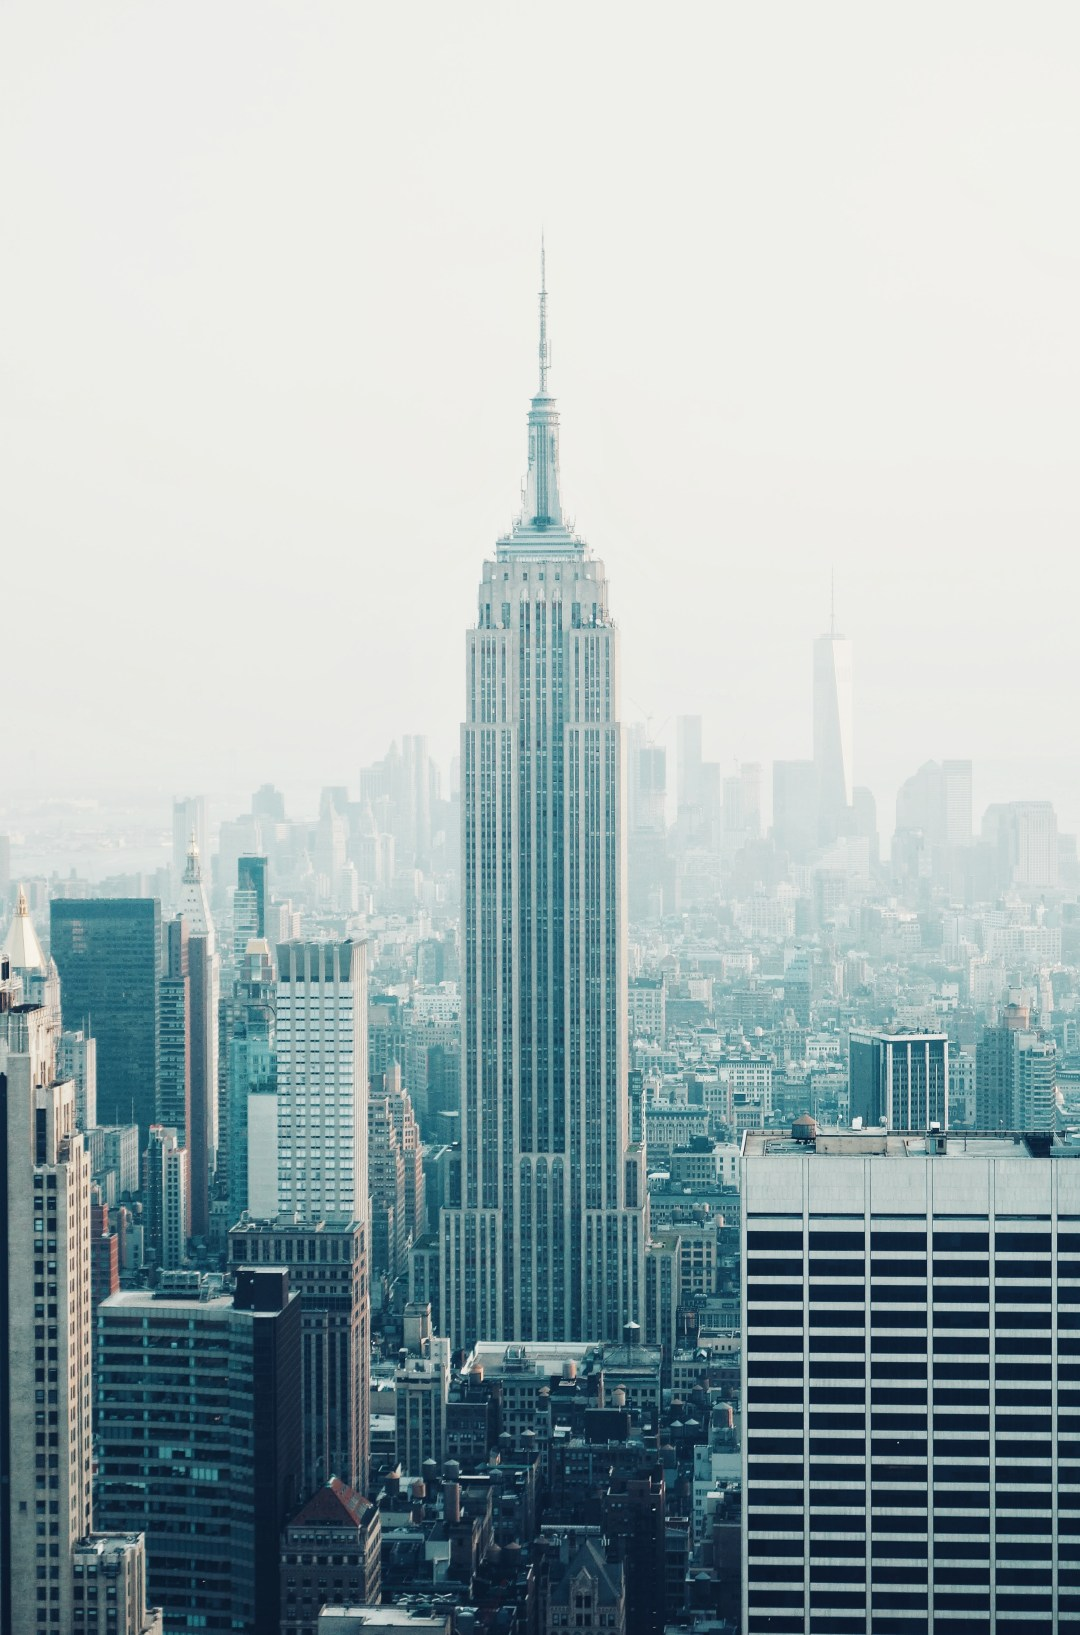 100+ Wallpapers [Free] | Download Images on Unsplash